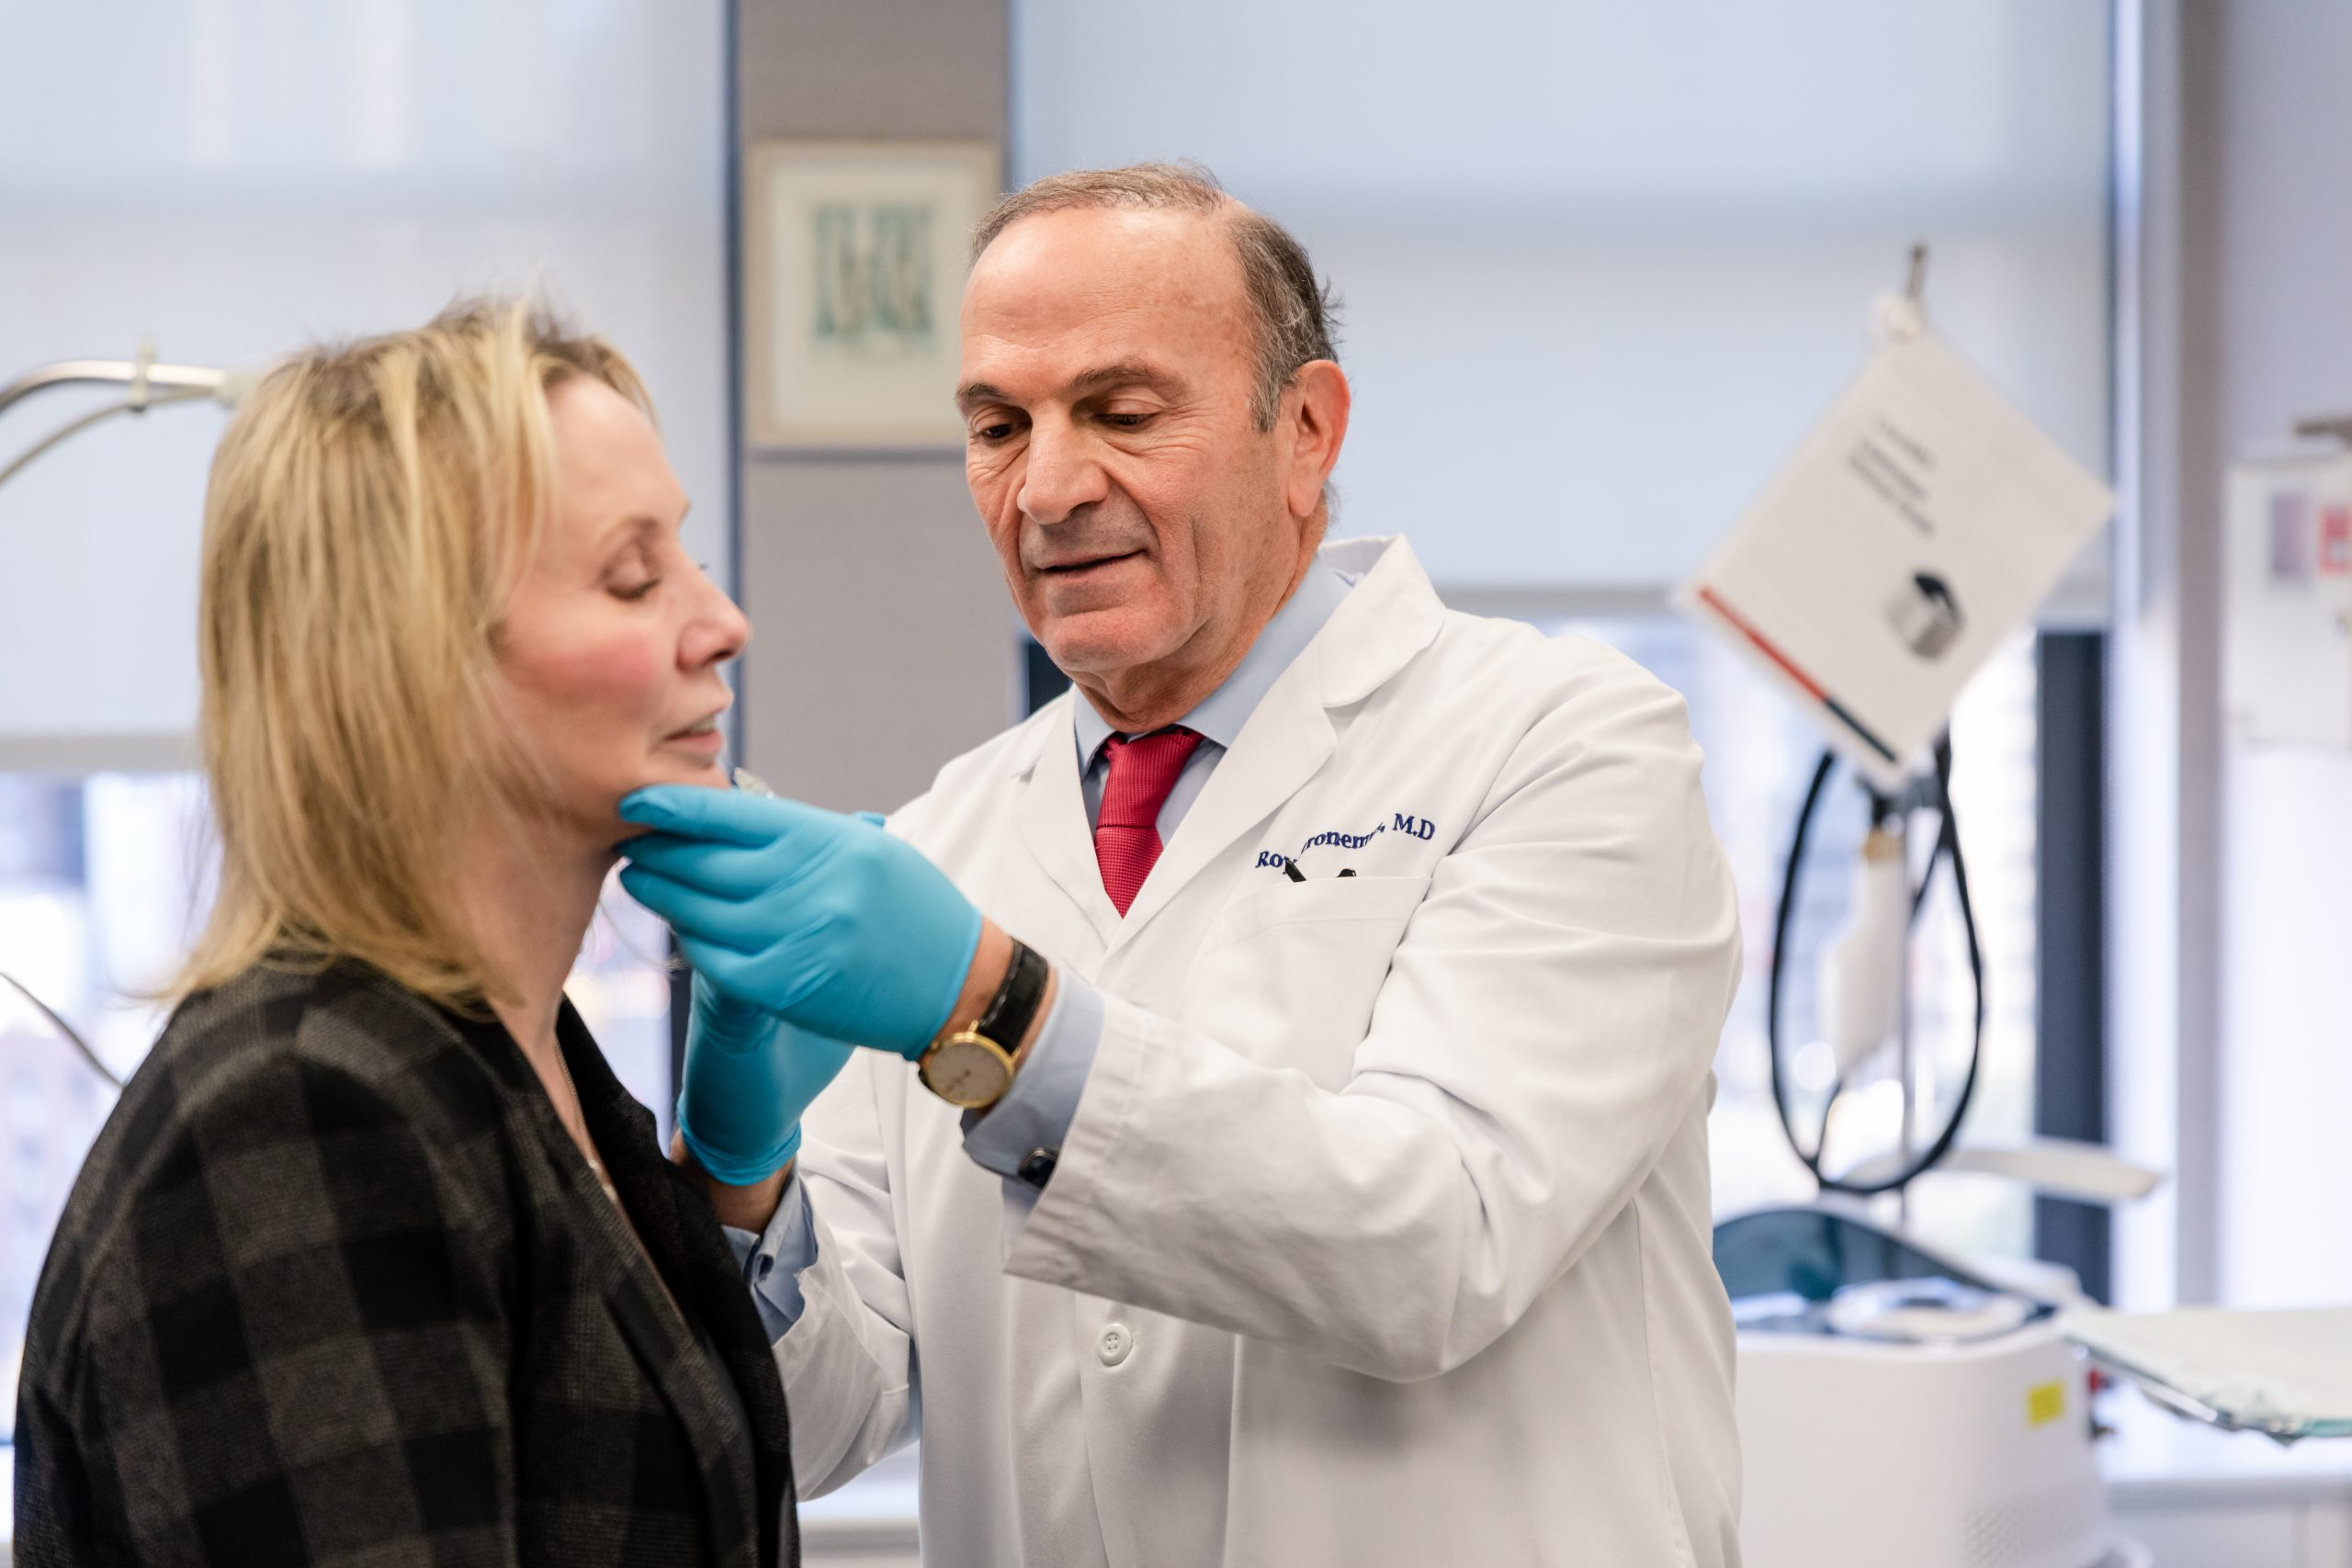 botox injections for neck rejuvenation in New York City